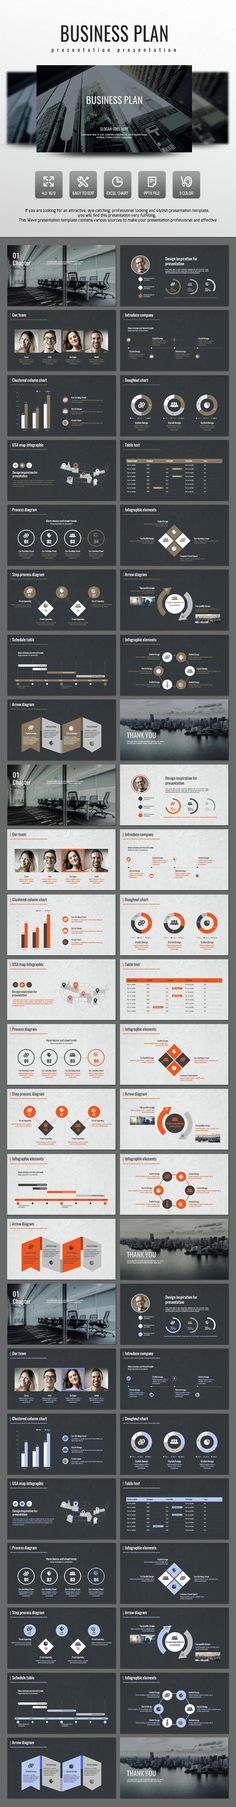 Buy Business Plan by on GraphicRiver. This 'Business Plan Presentation' template is designed with business plan design themes. Attractive colors and images. Business Ppt, Business Planning, Business Design, Business Ideas, Online Business, Business Studies, Corporate Design, Business Marketing, Graphisches Design